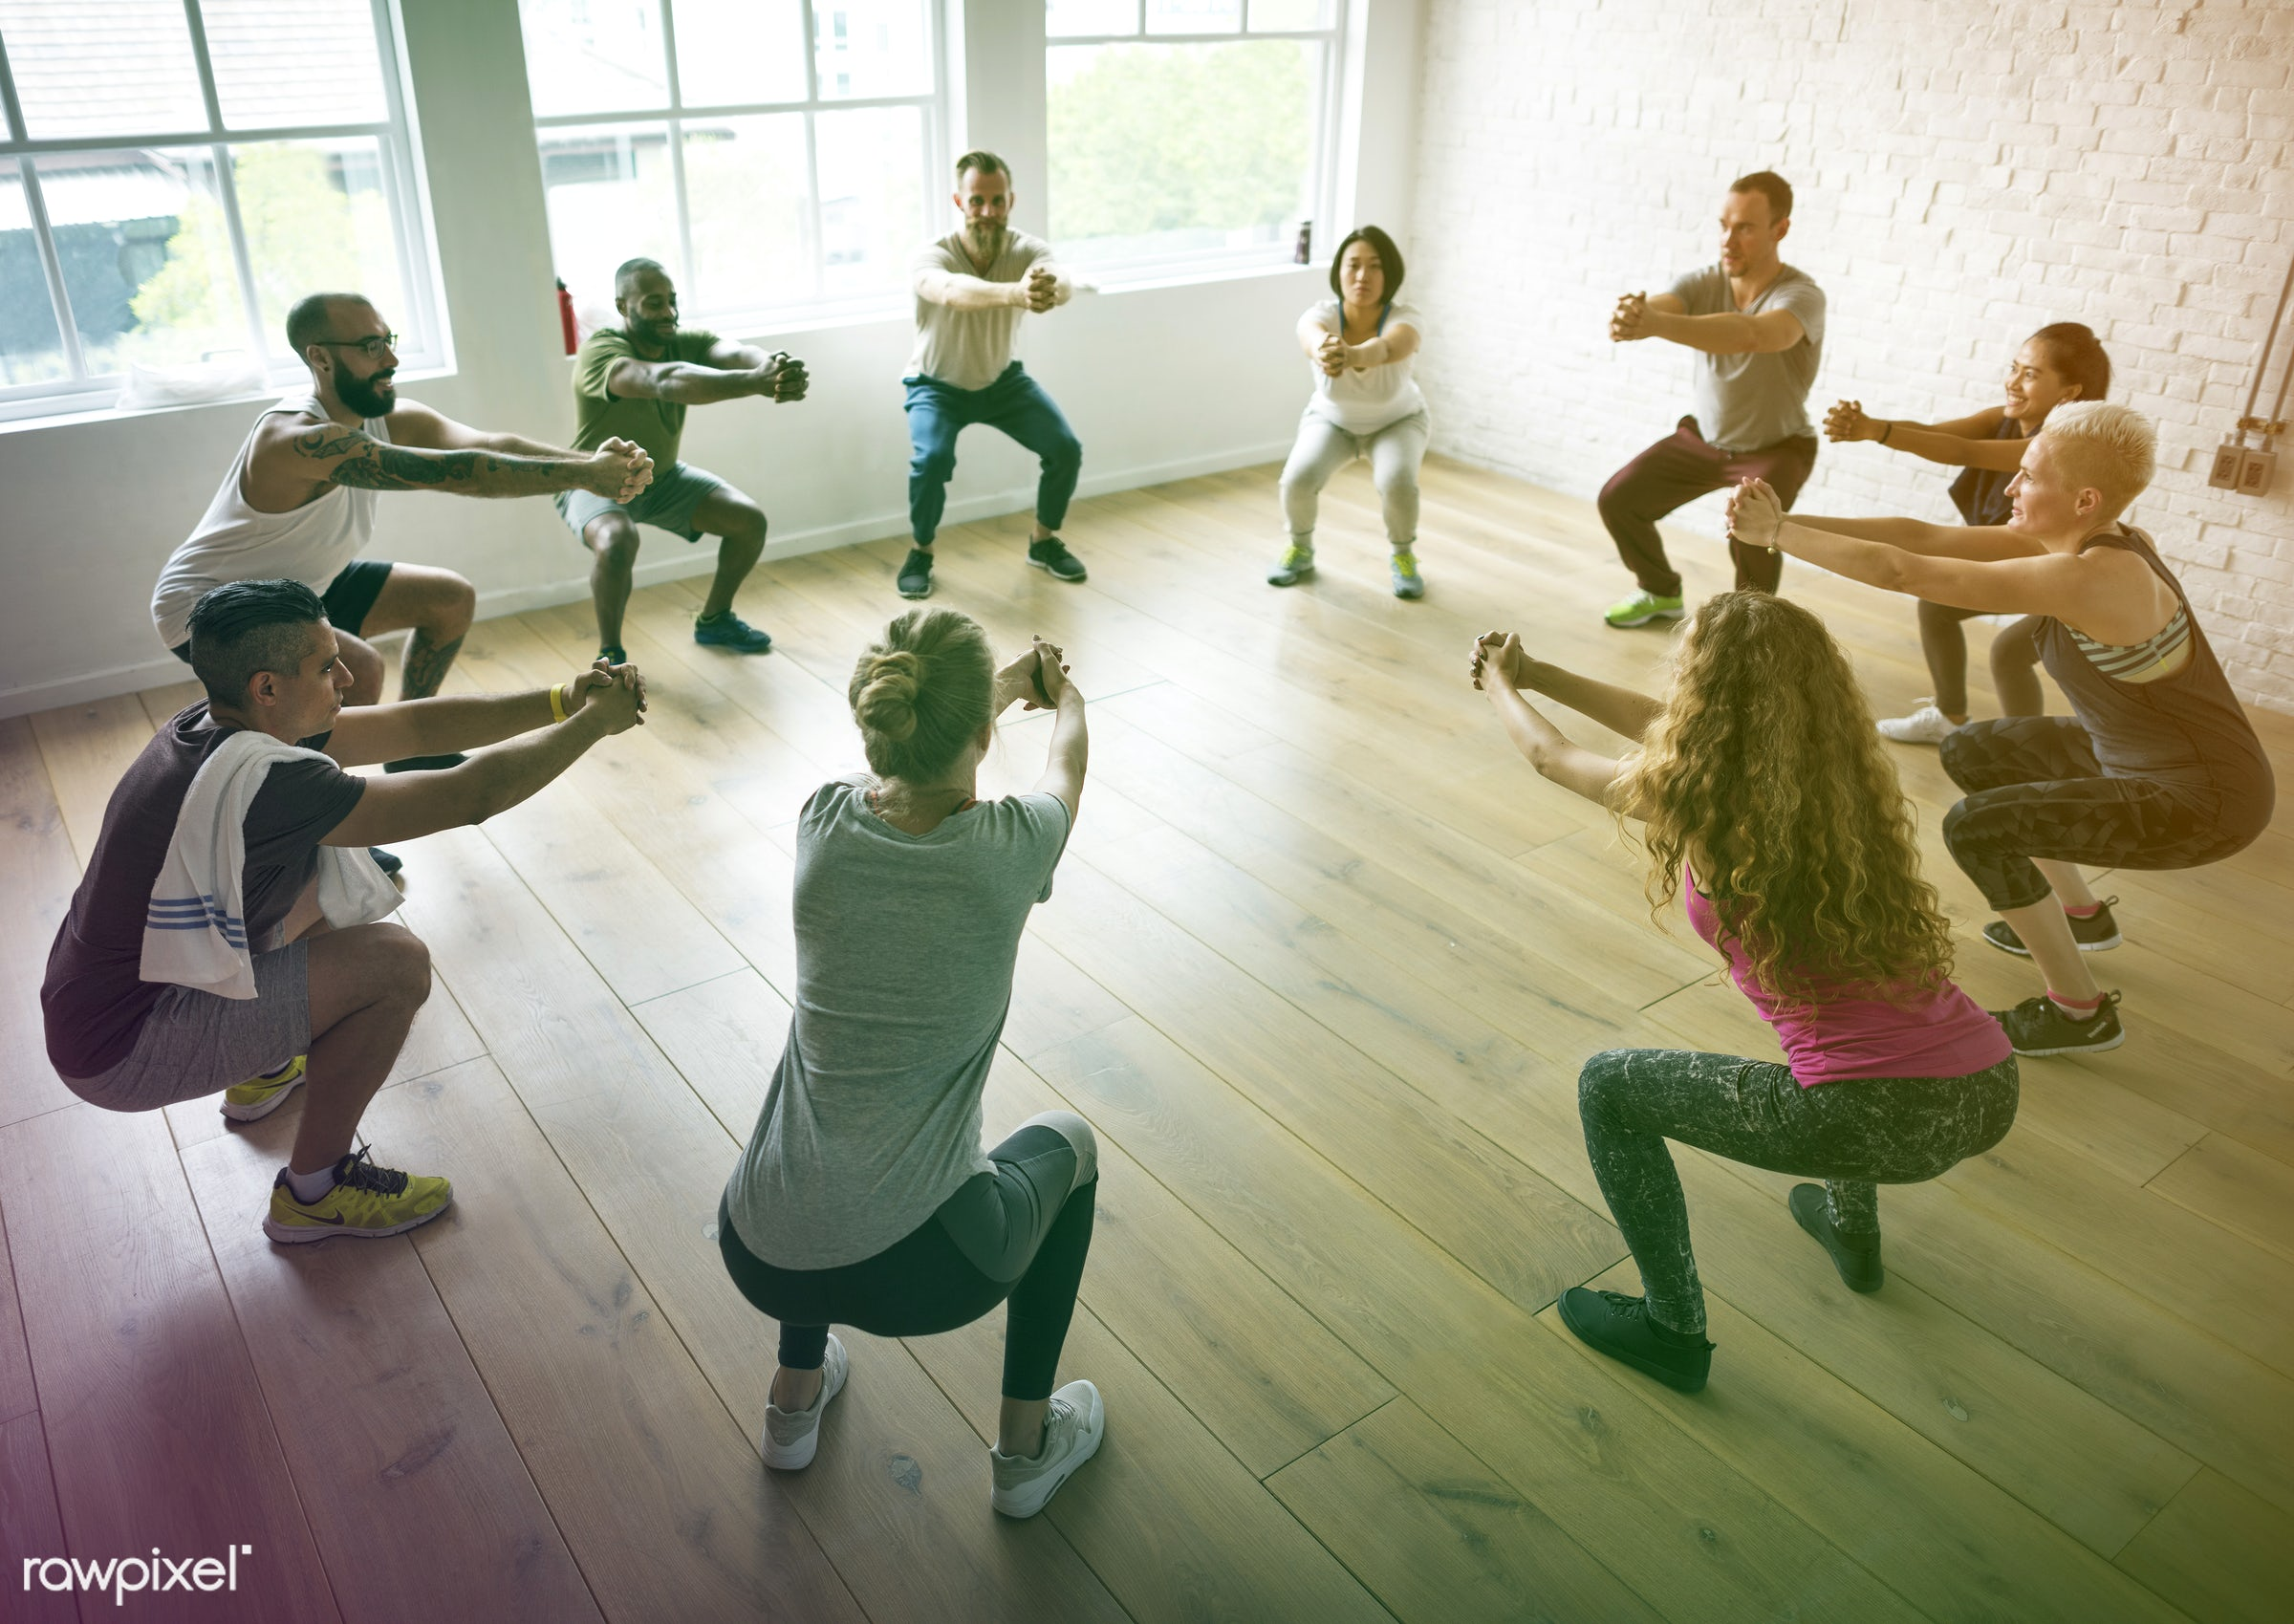 respiration, physical, recreation, people, stretching, together, lomo, practicing, lifestyle, flexibility, exercising, class...